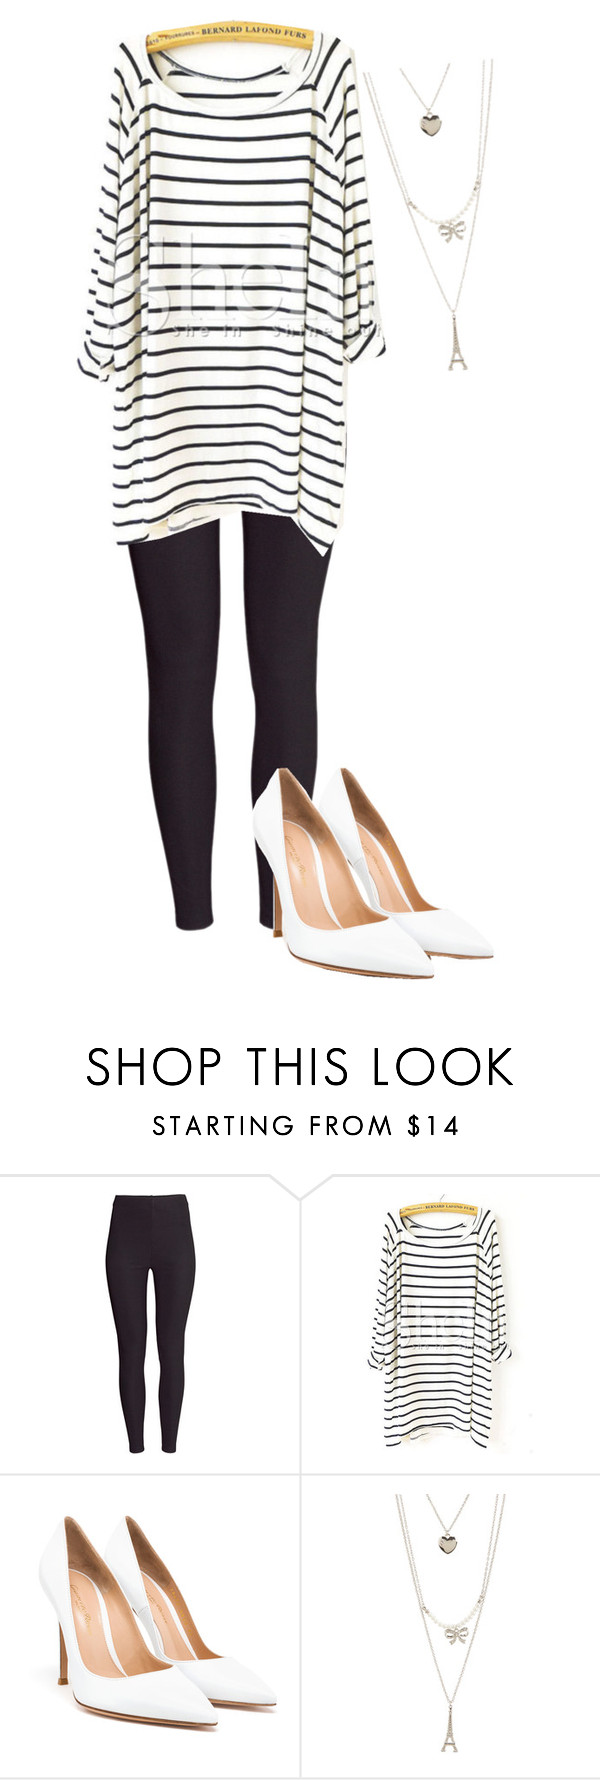 """""""Work"""" by nicoleee66 ❤ liked on Polyvore featuring H&M, Gianvito Rossi and Aéropostale"""